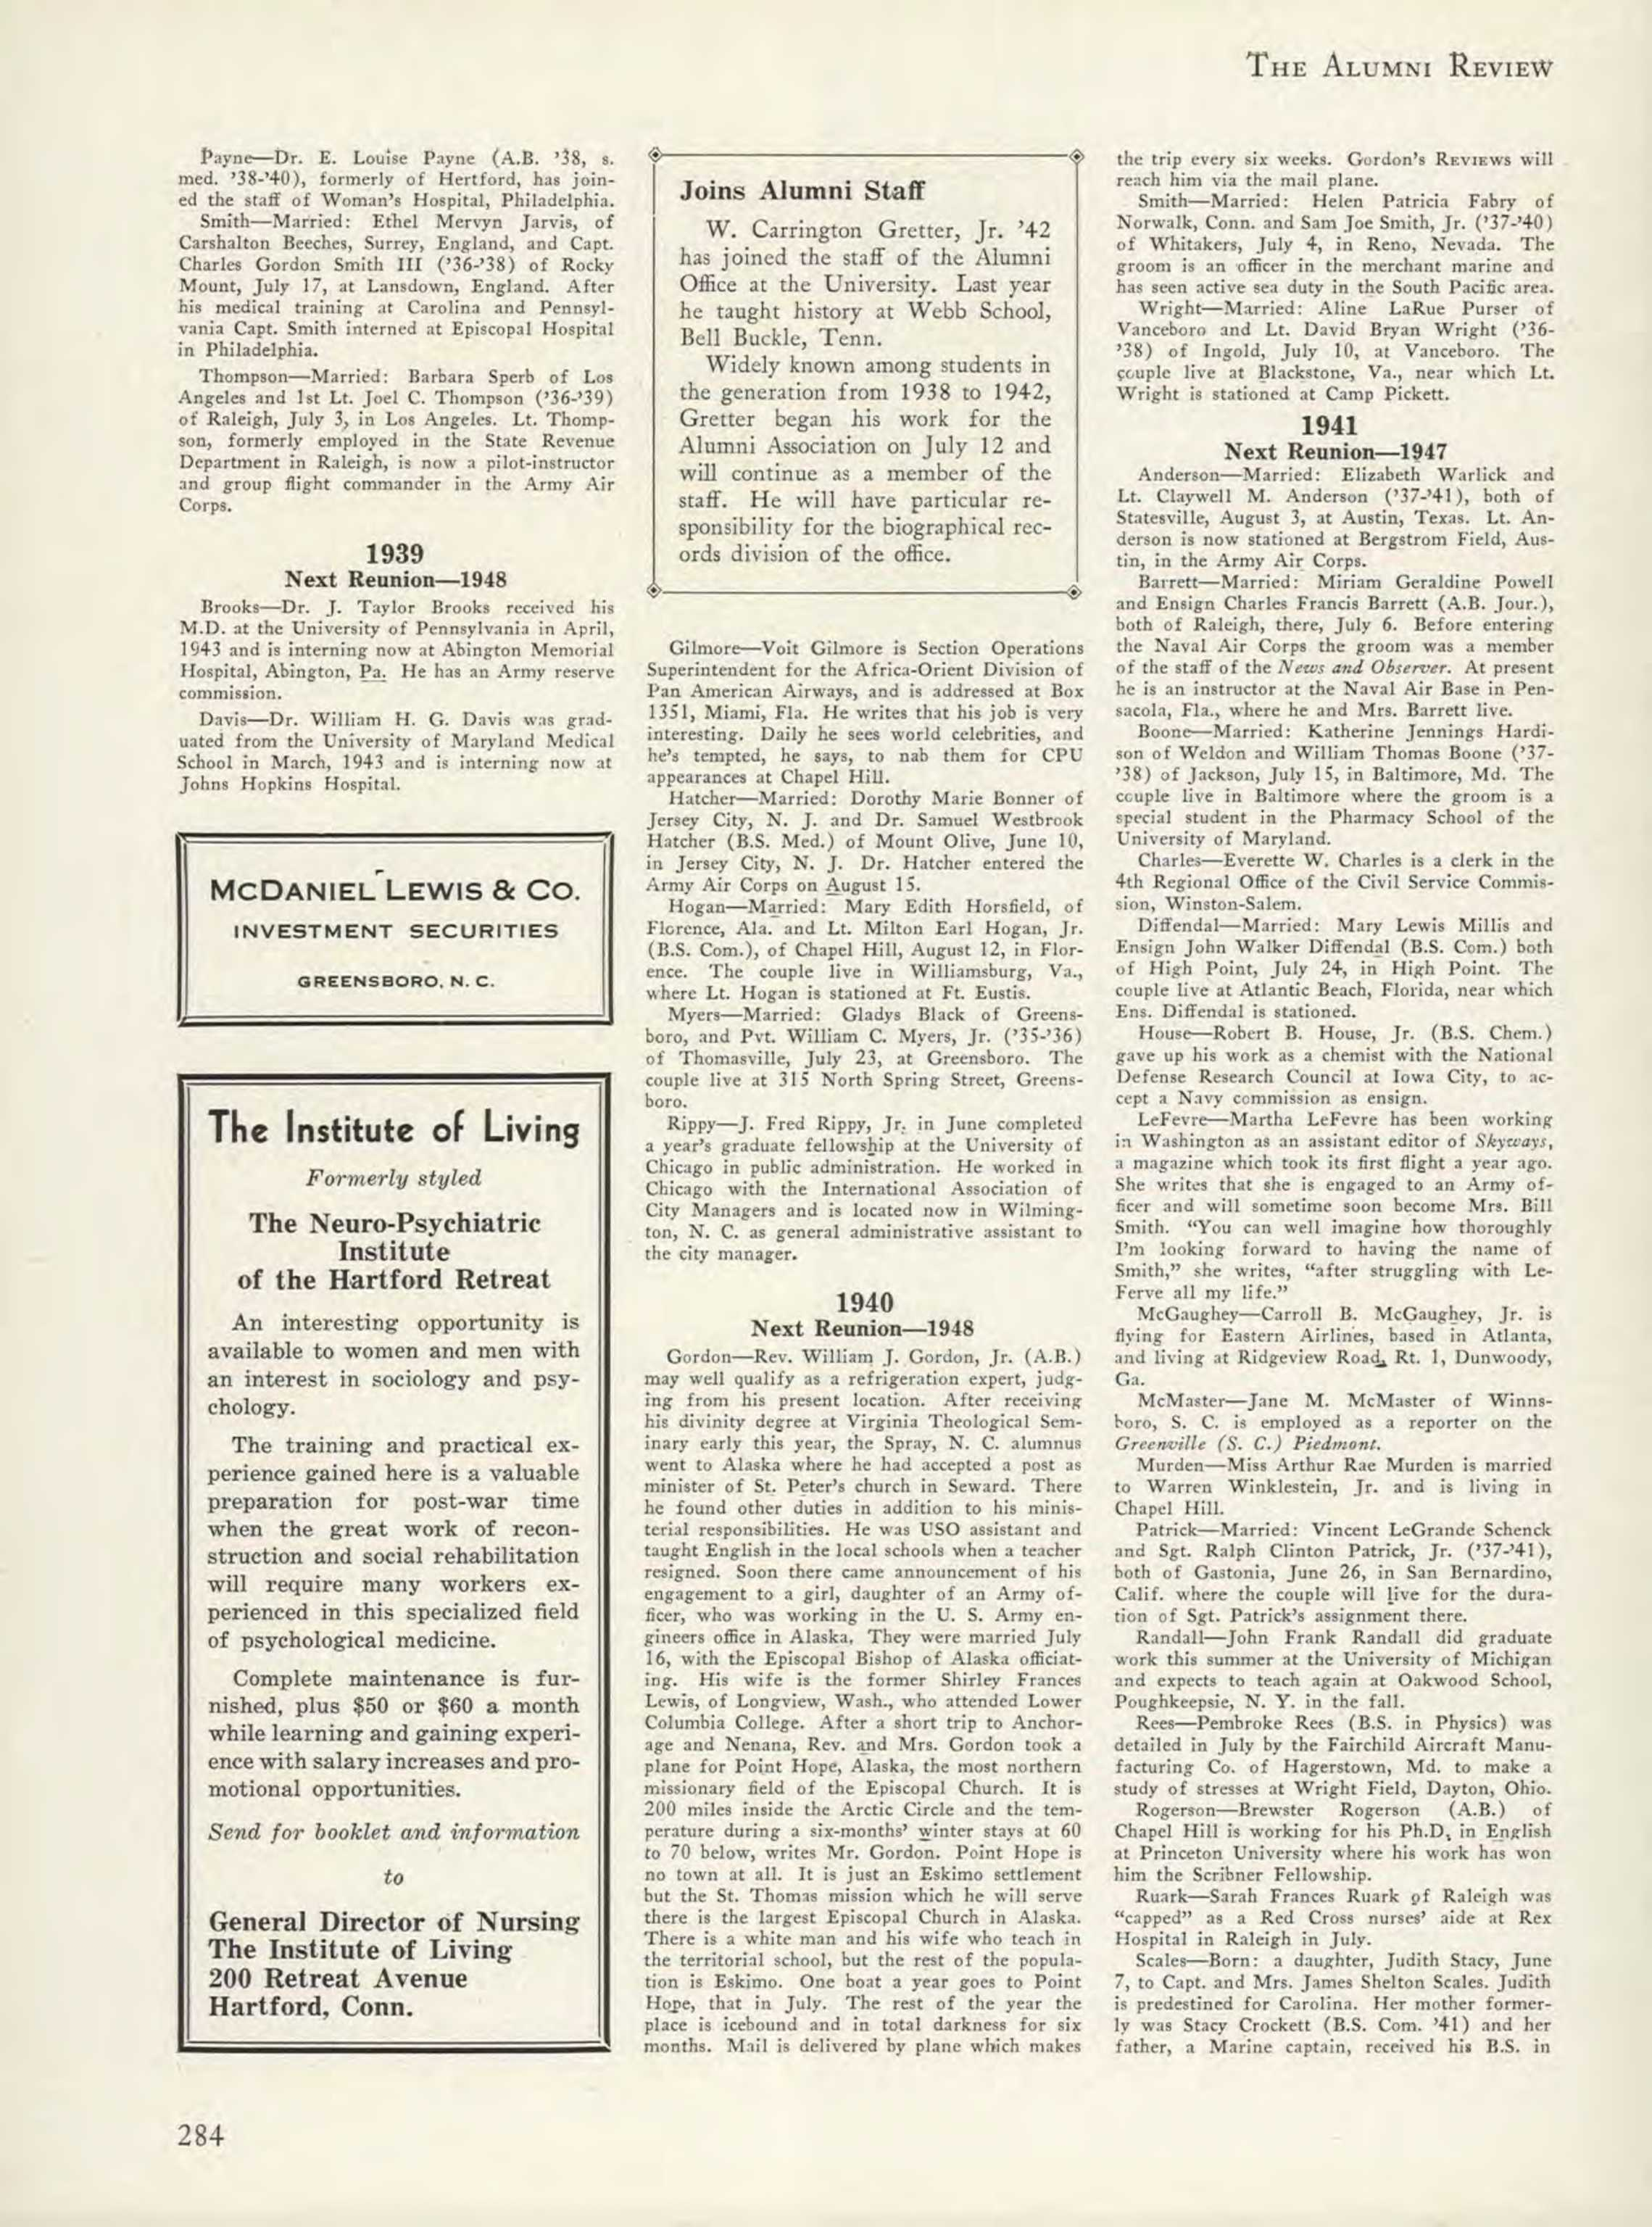 Carolina Alumni Review - Summer 1943 - page 284